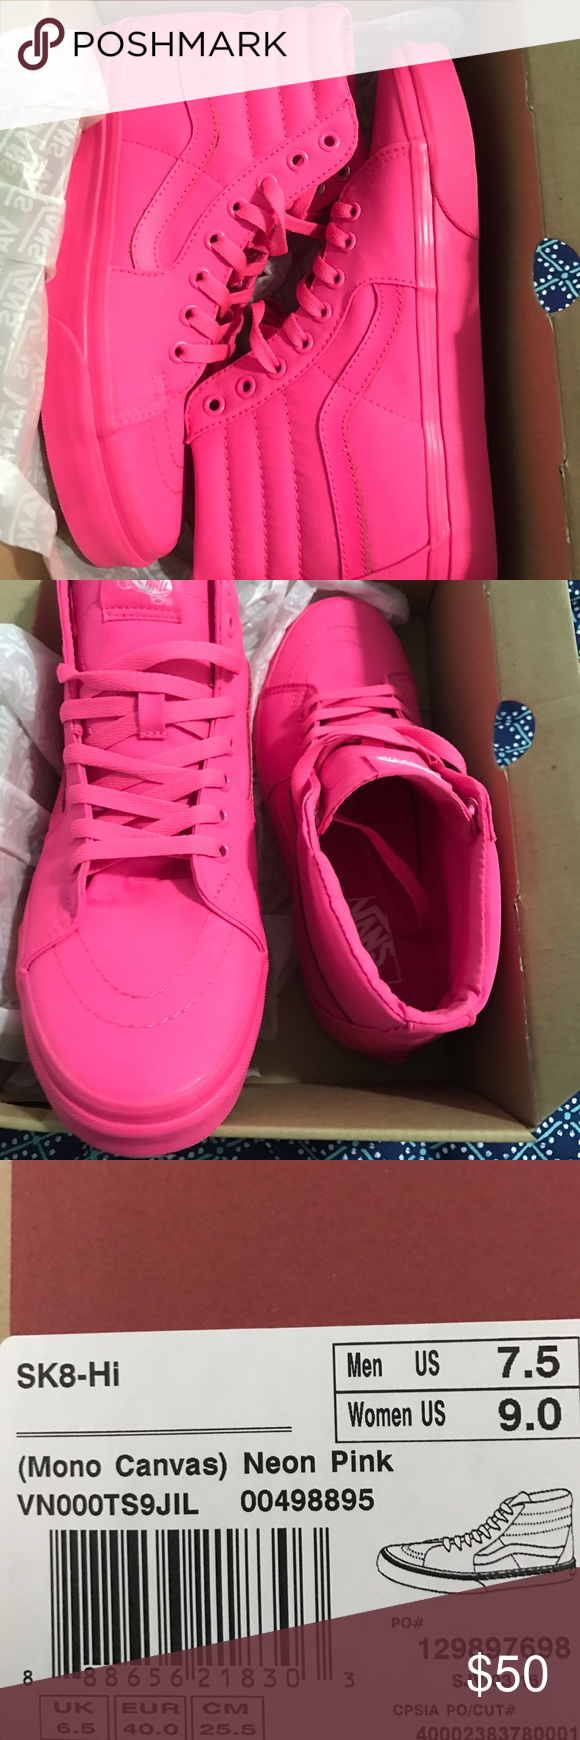 ee2589de43f292 Vans Neon Pink High Top Sneakers These Vans are a size 9 in women s.  They re in great condition